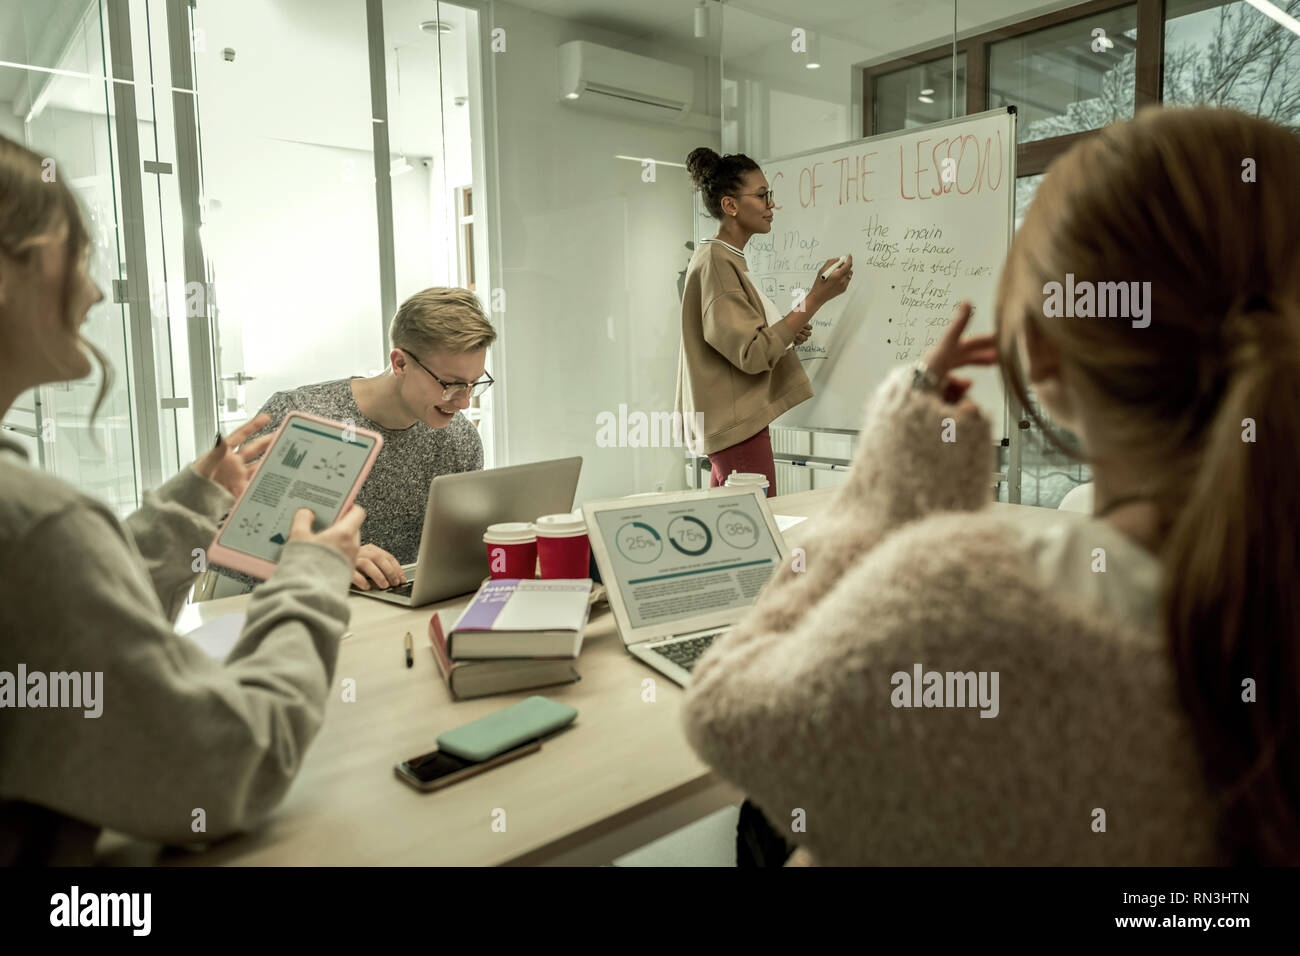 Three modern students using their gadgets during the class - Stock Image